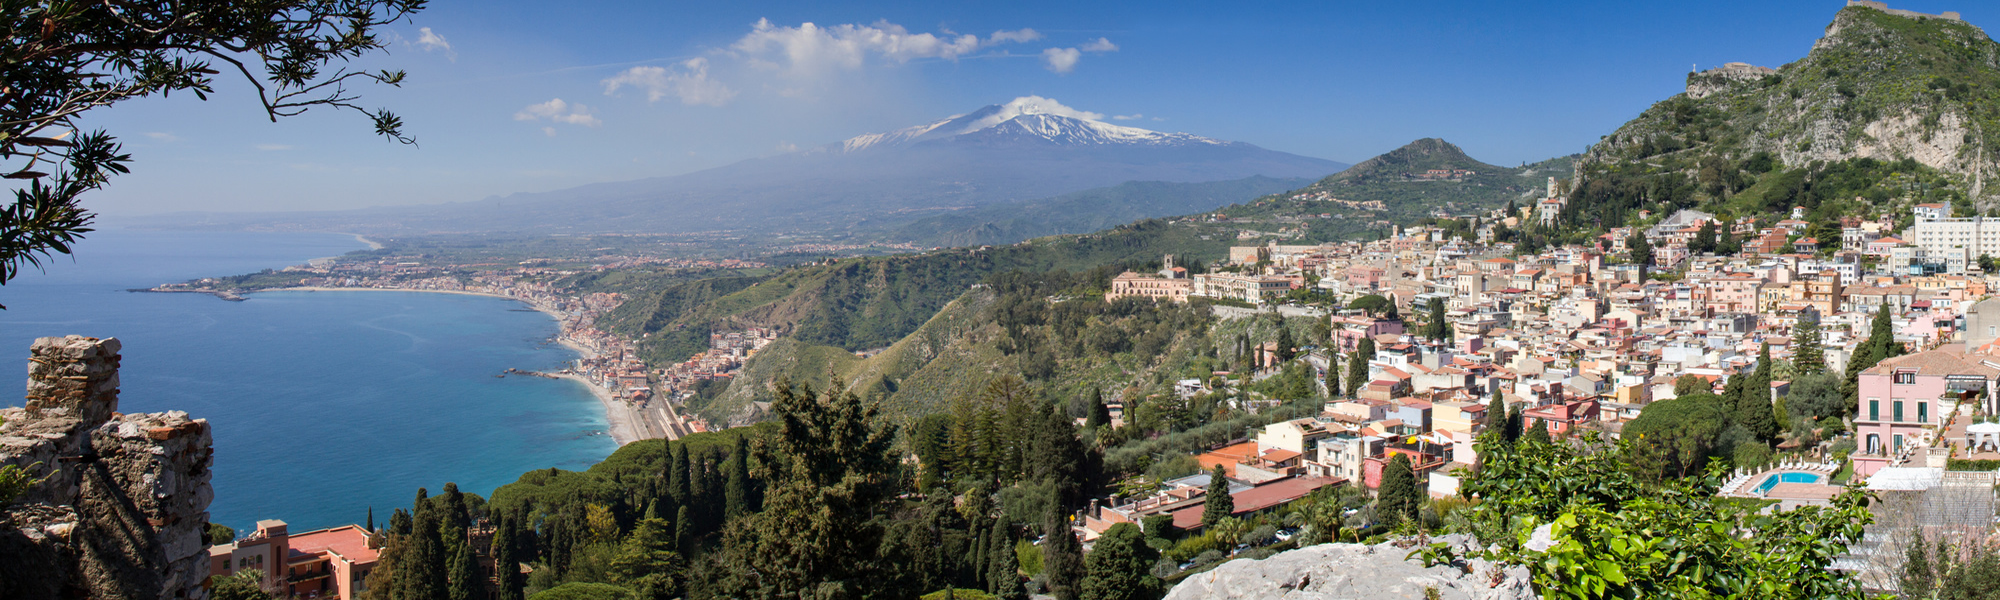 Discover the fascinating Taormina with our small group tours